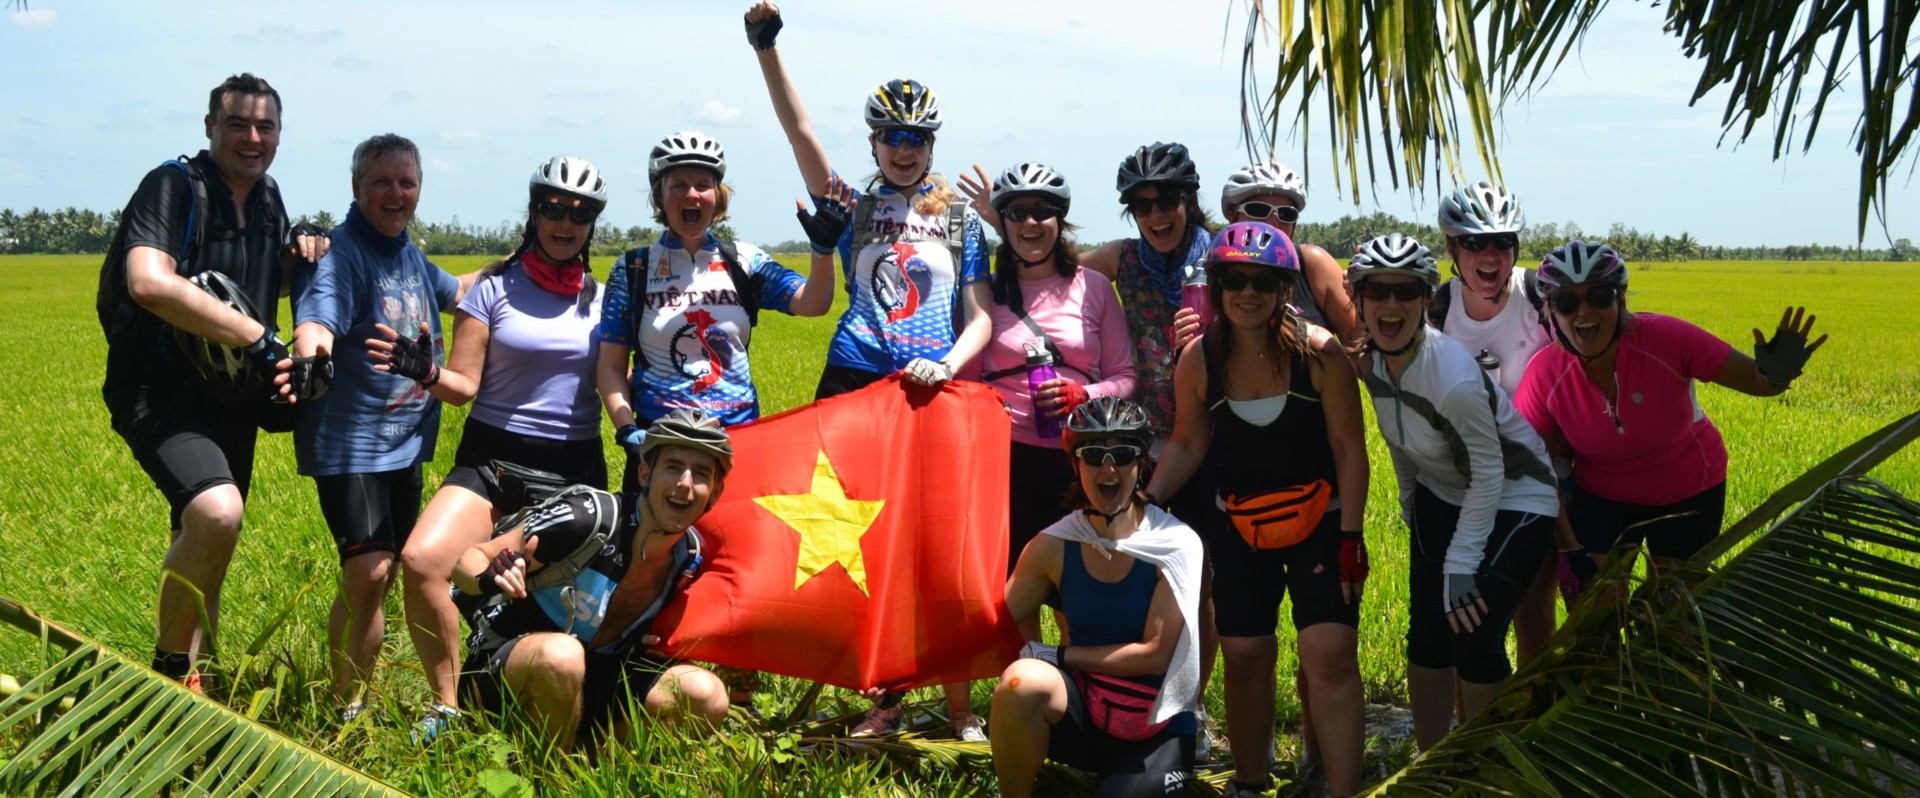 Group of people in cycling jerseys, holding flag, smiling